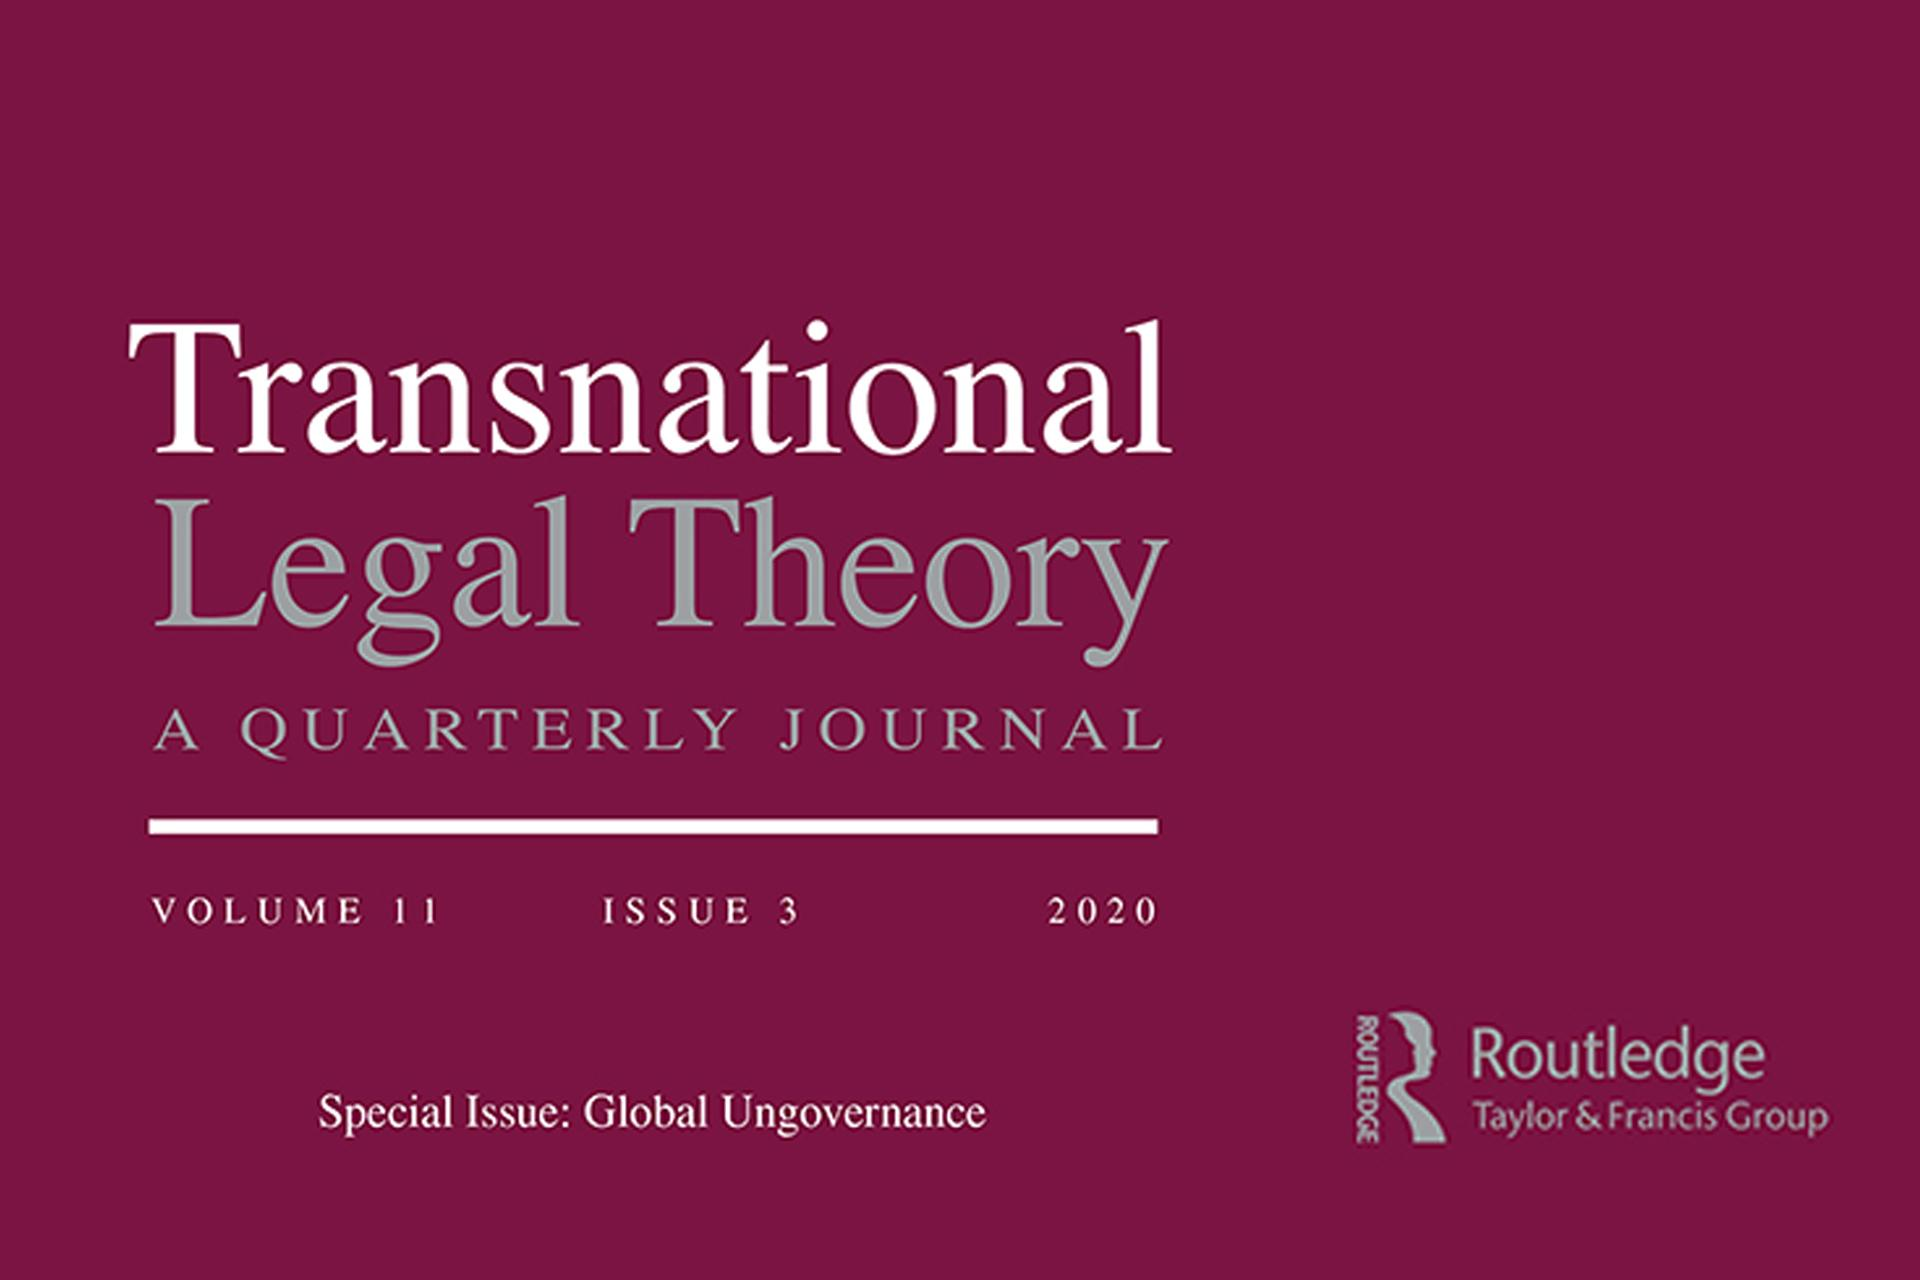 Transnational Legal Theory